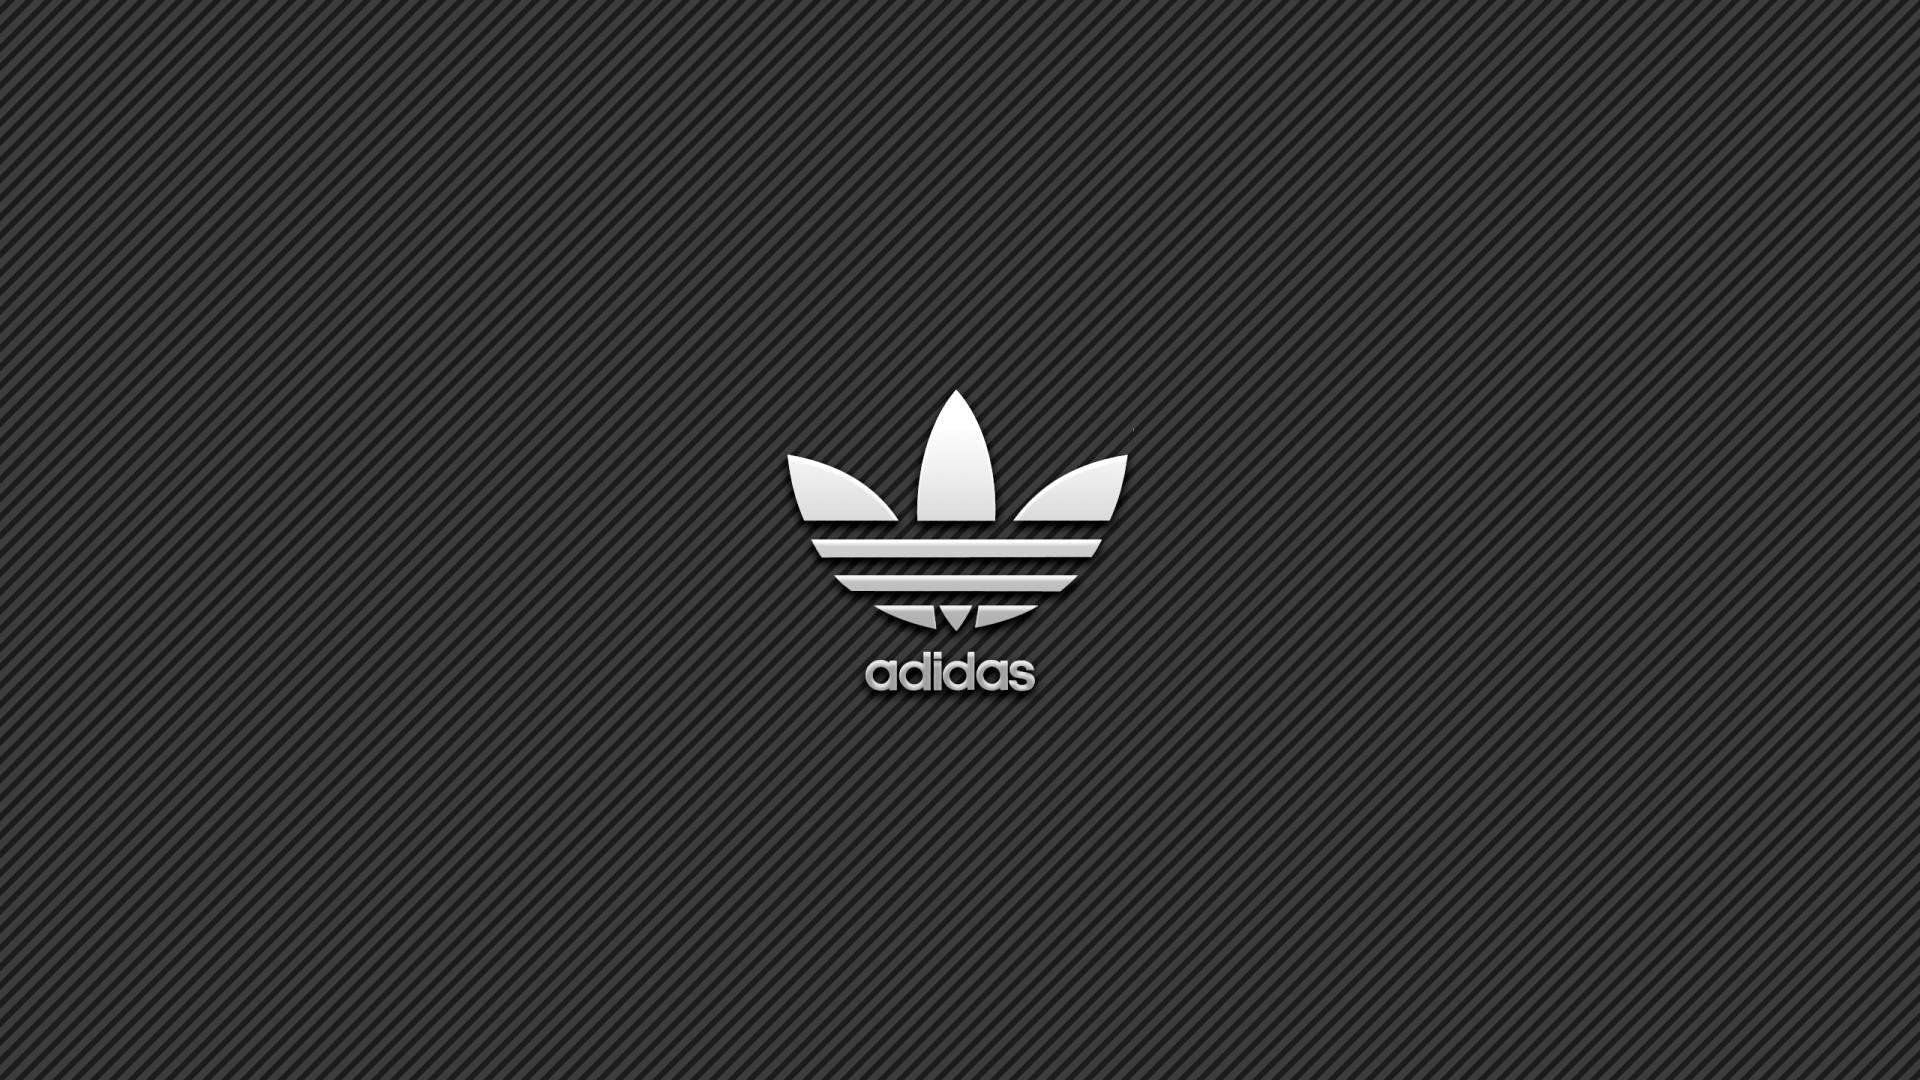 1920x1080 Pin by Wan Manisah on Iphone wallpapers in 2019 | Adidas ...